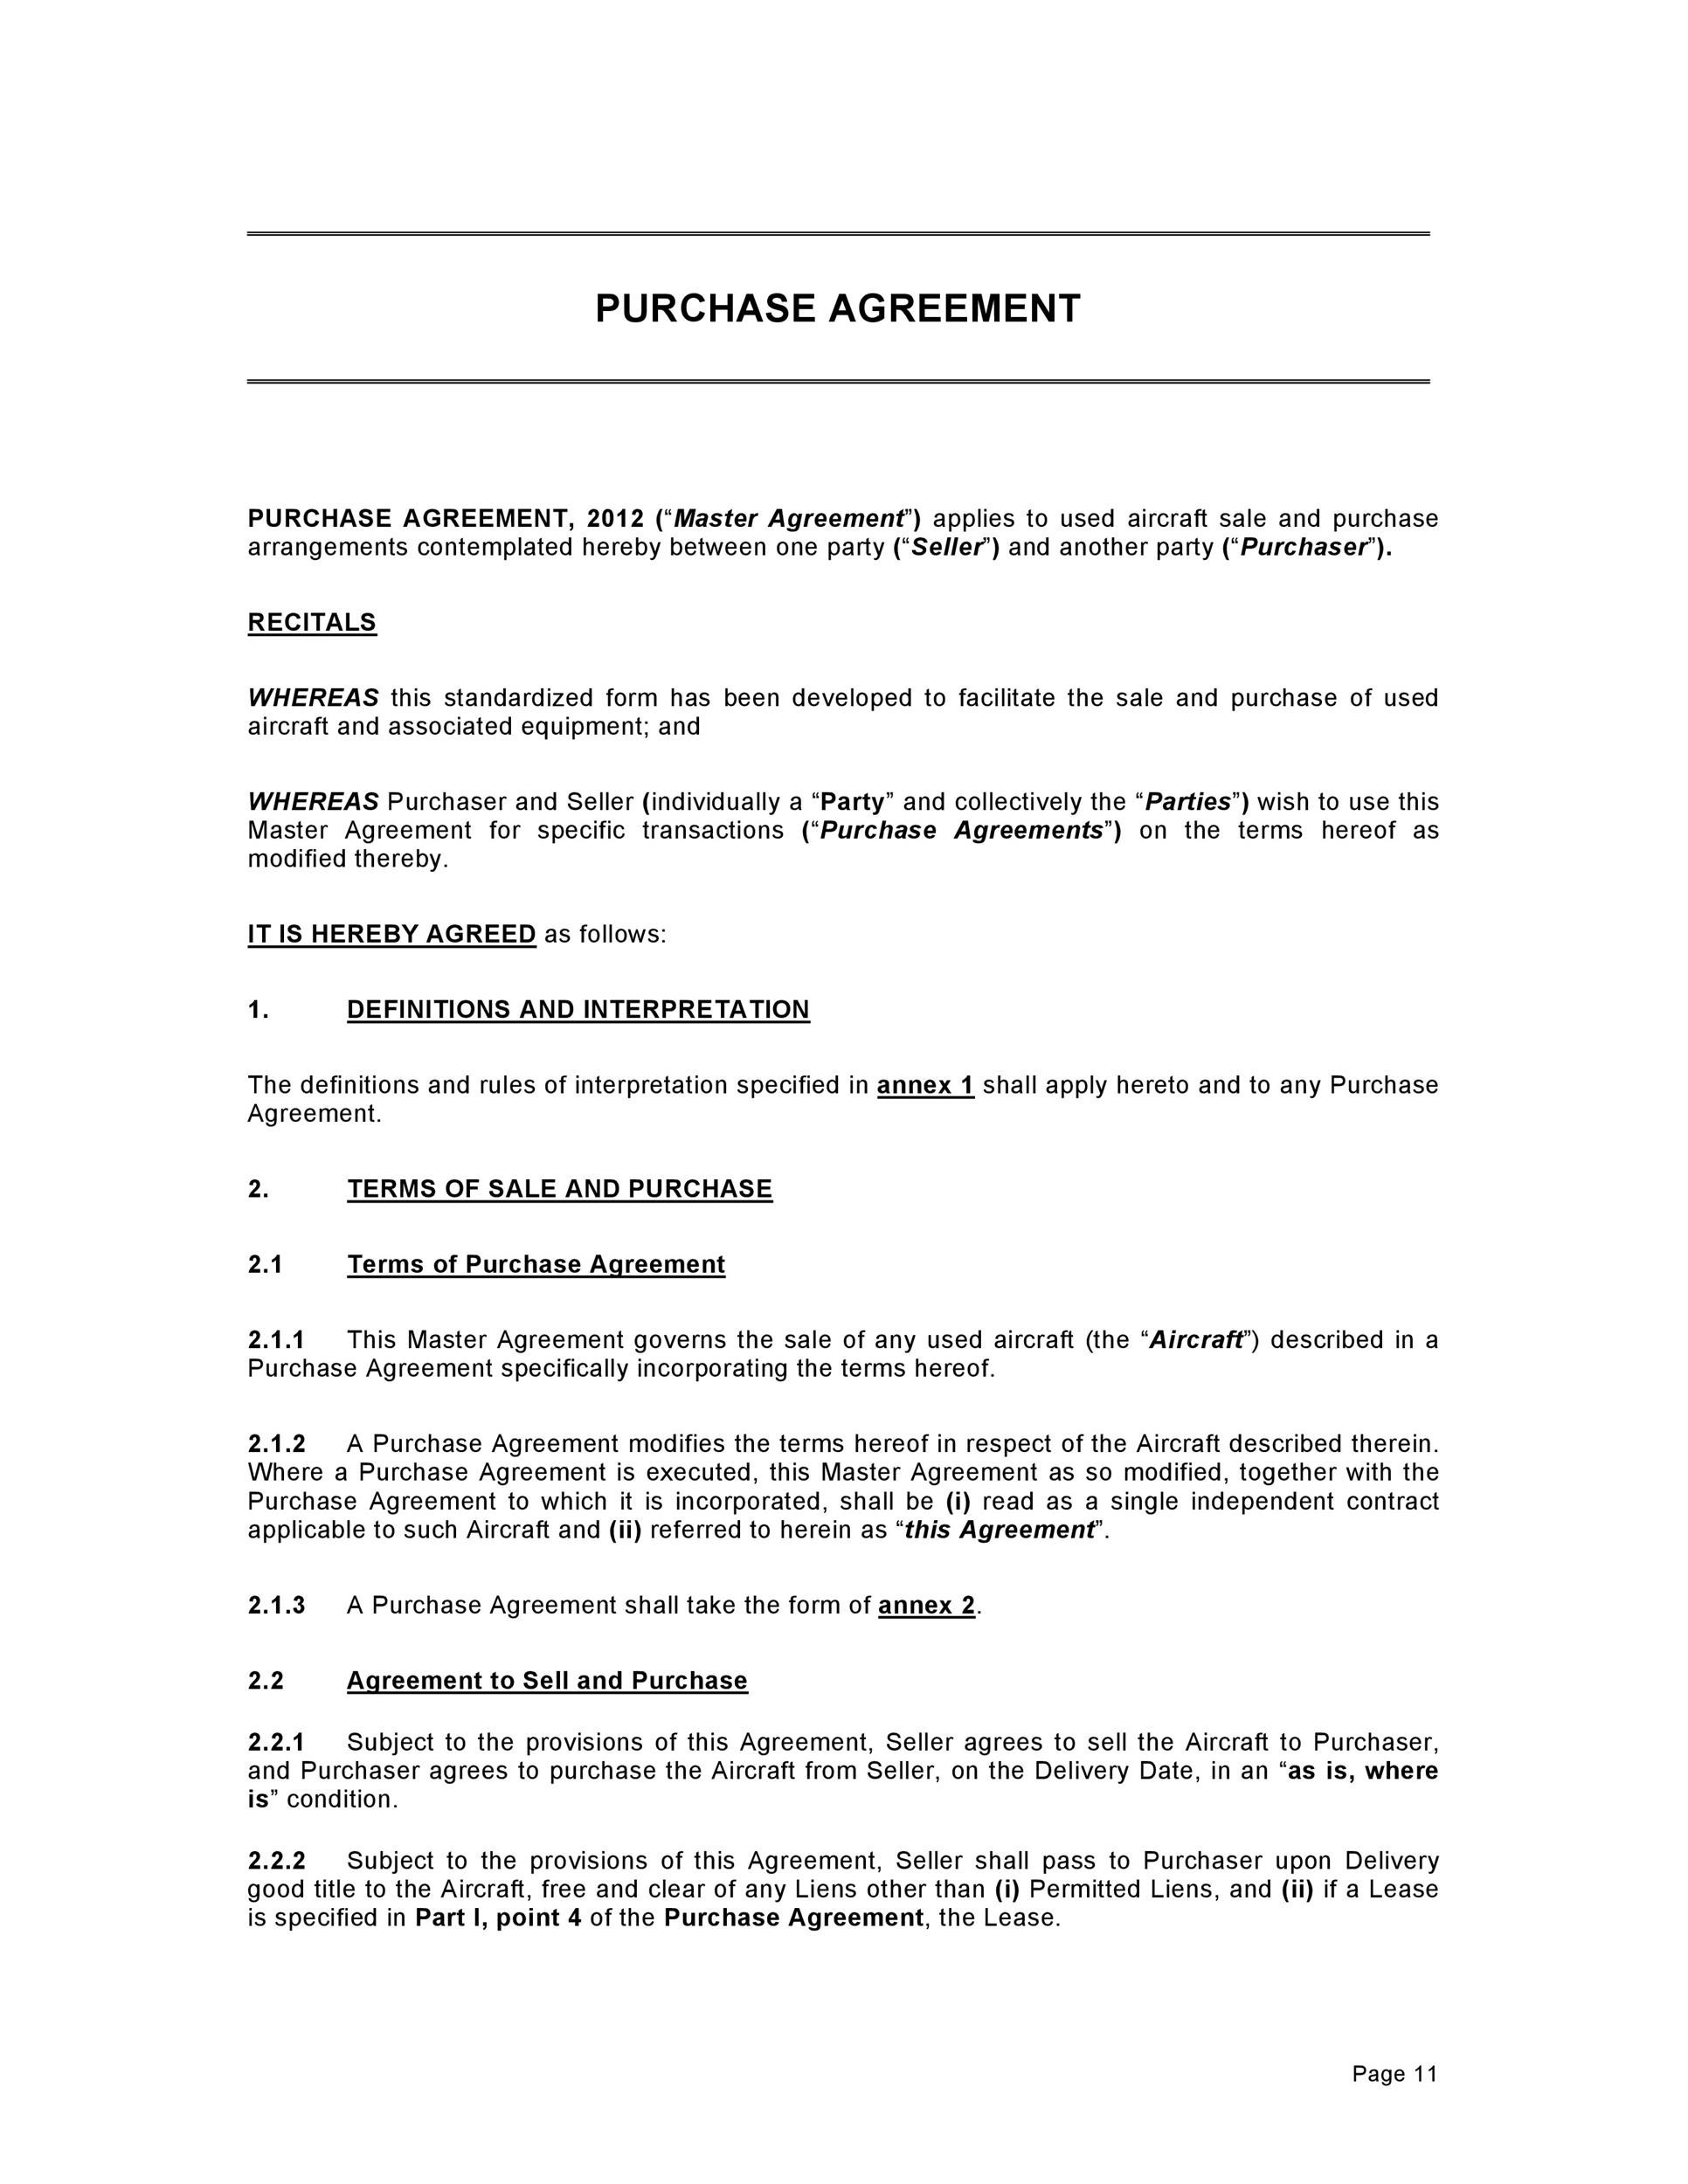 Agreement Sample Media Sponsorship Agreement Template Download